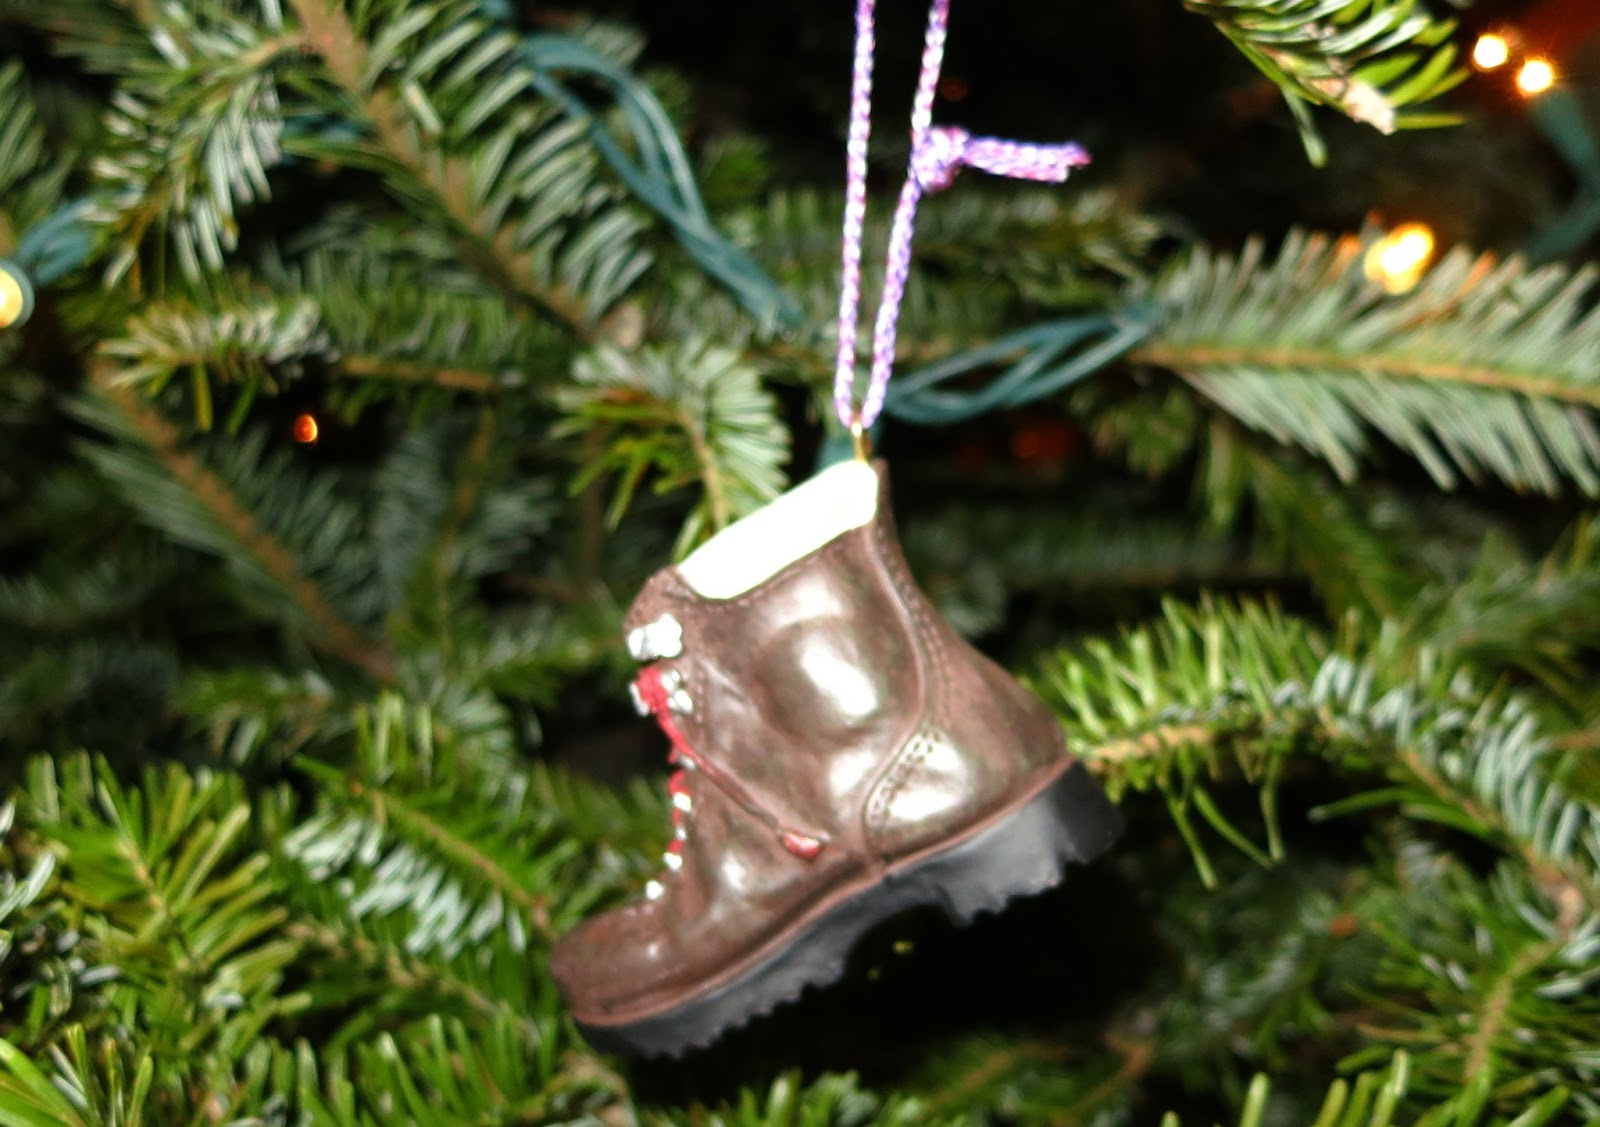 Rock climbing christmas ornaments -  E G A Rock Climbing Shoe A Backpack A Snowshoe A Kayak